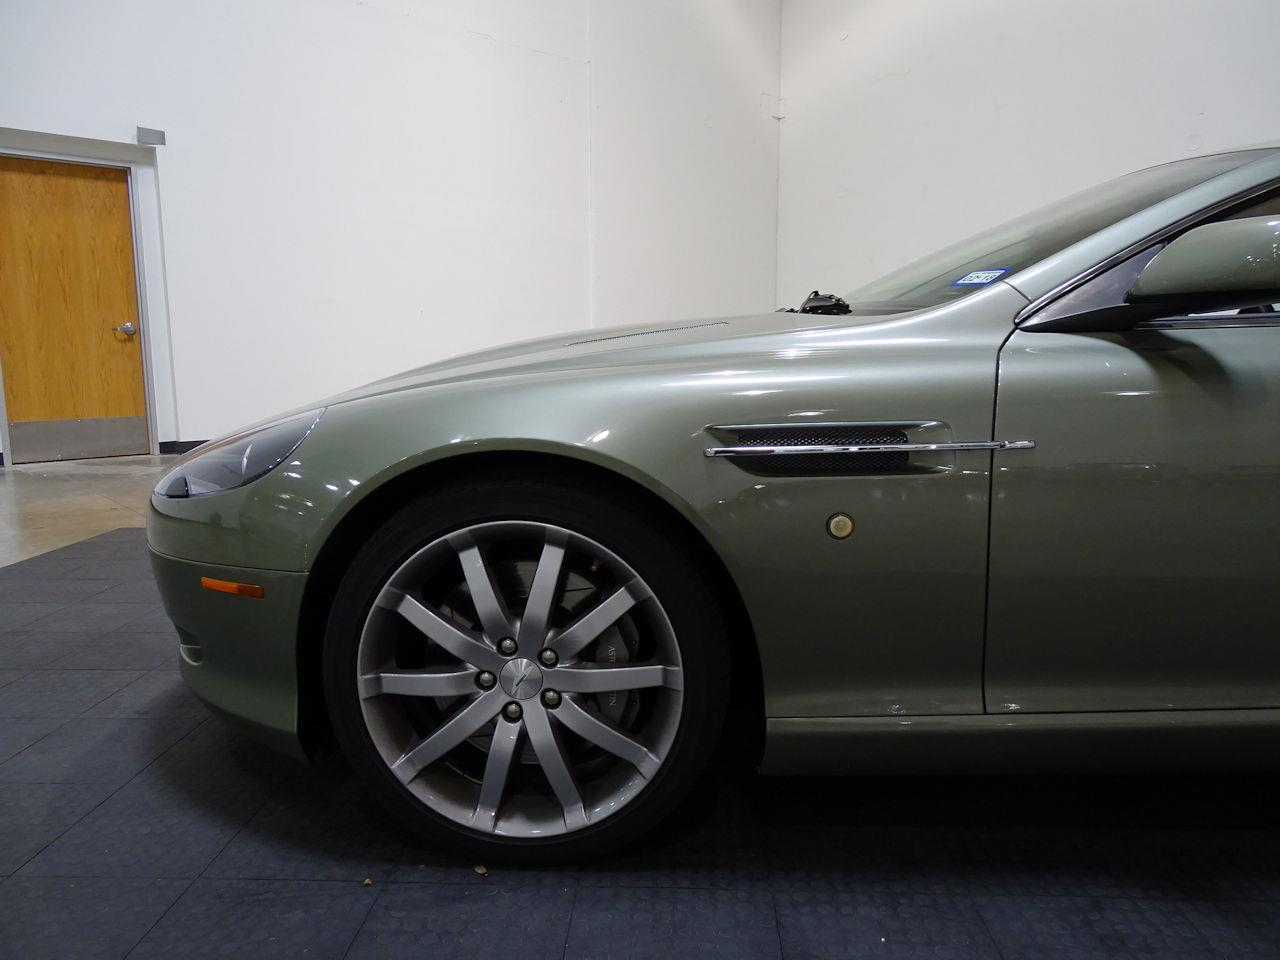 Large Picture of '05 Aston Martin DB9 located in Texas - $58,000.00 Offered by Gateway Classic Cars - Houston - L7ZM